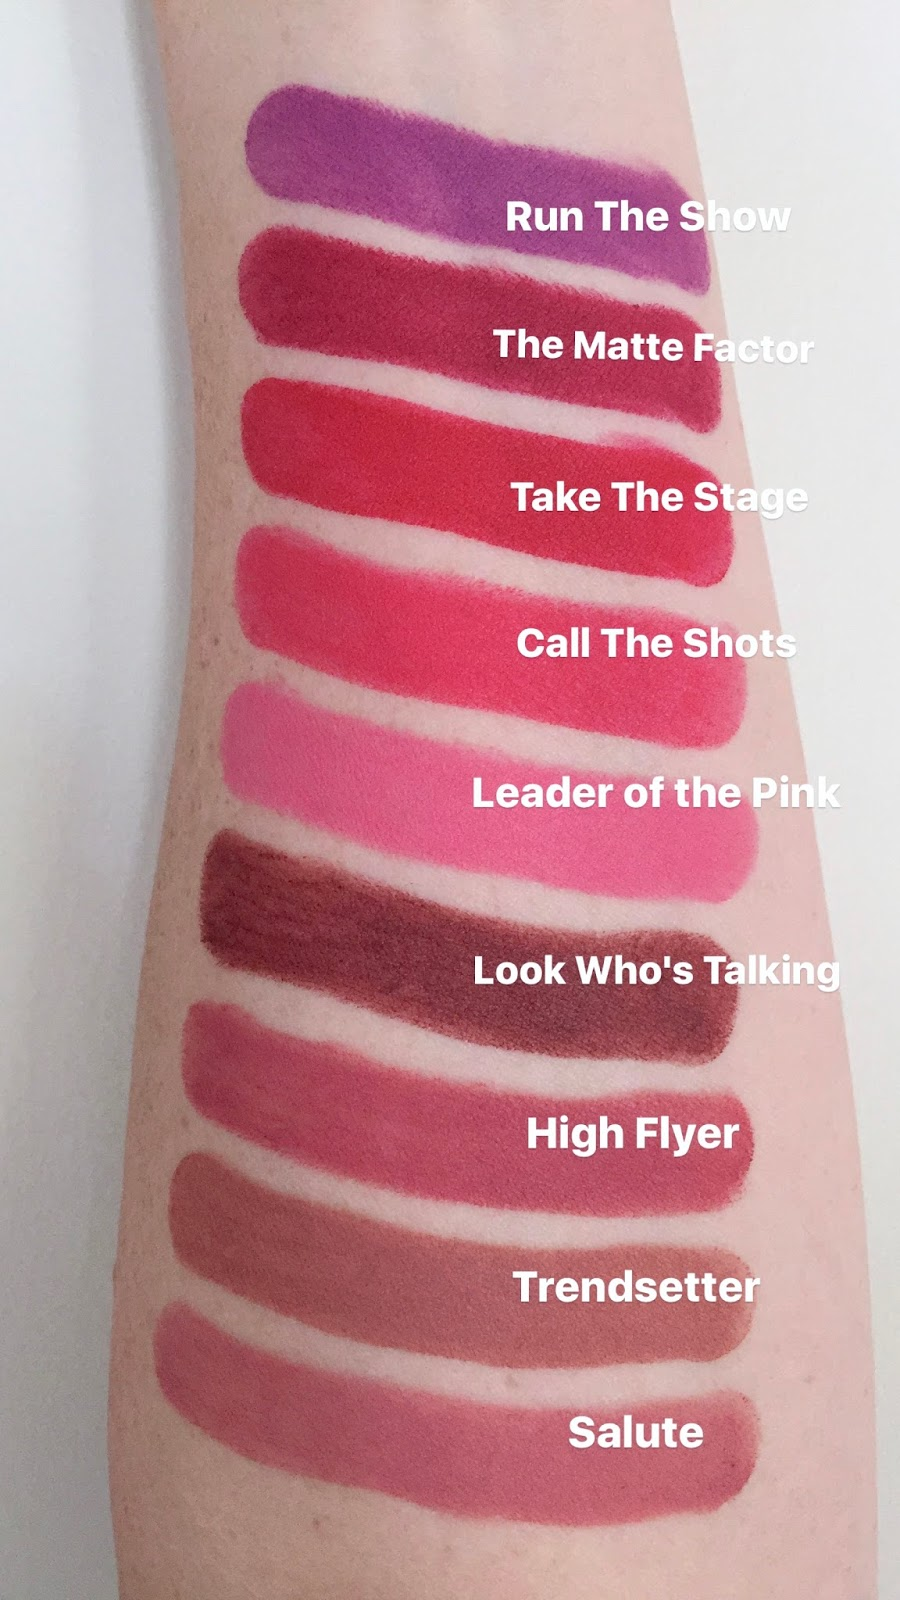 Beauty Must-Have: These Matte Lipsticks Are Full Of Surprises